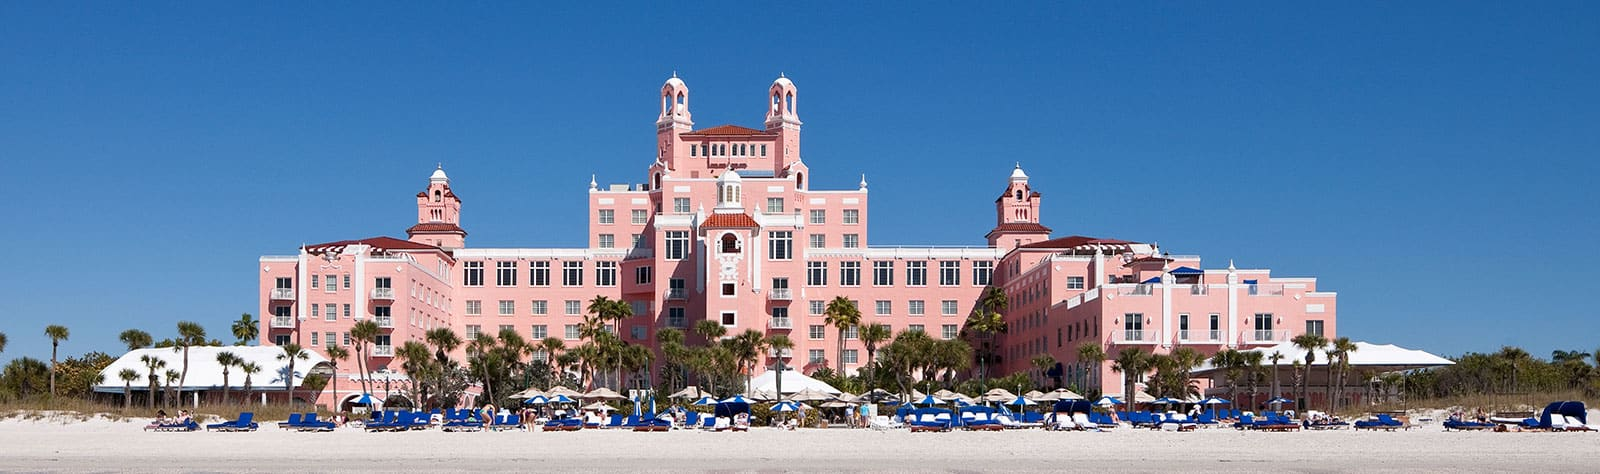 The Don CeSar, Florida - Press